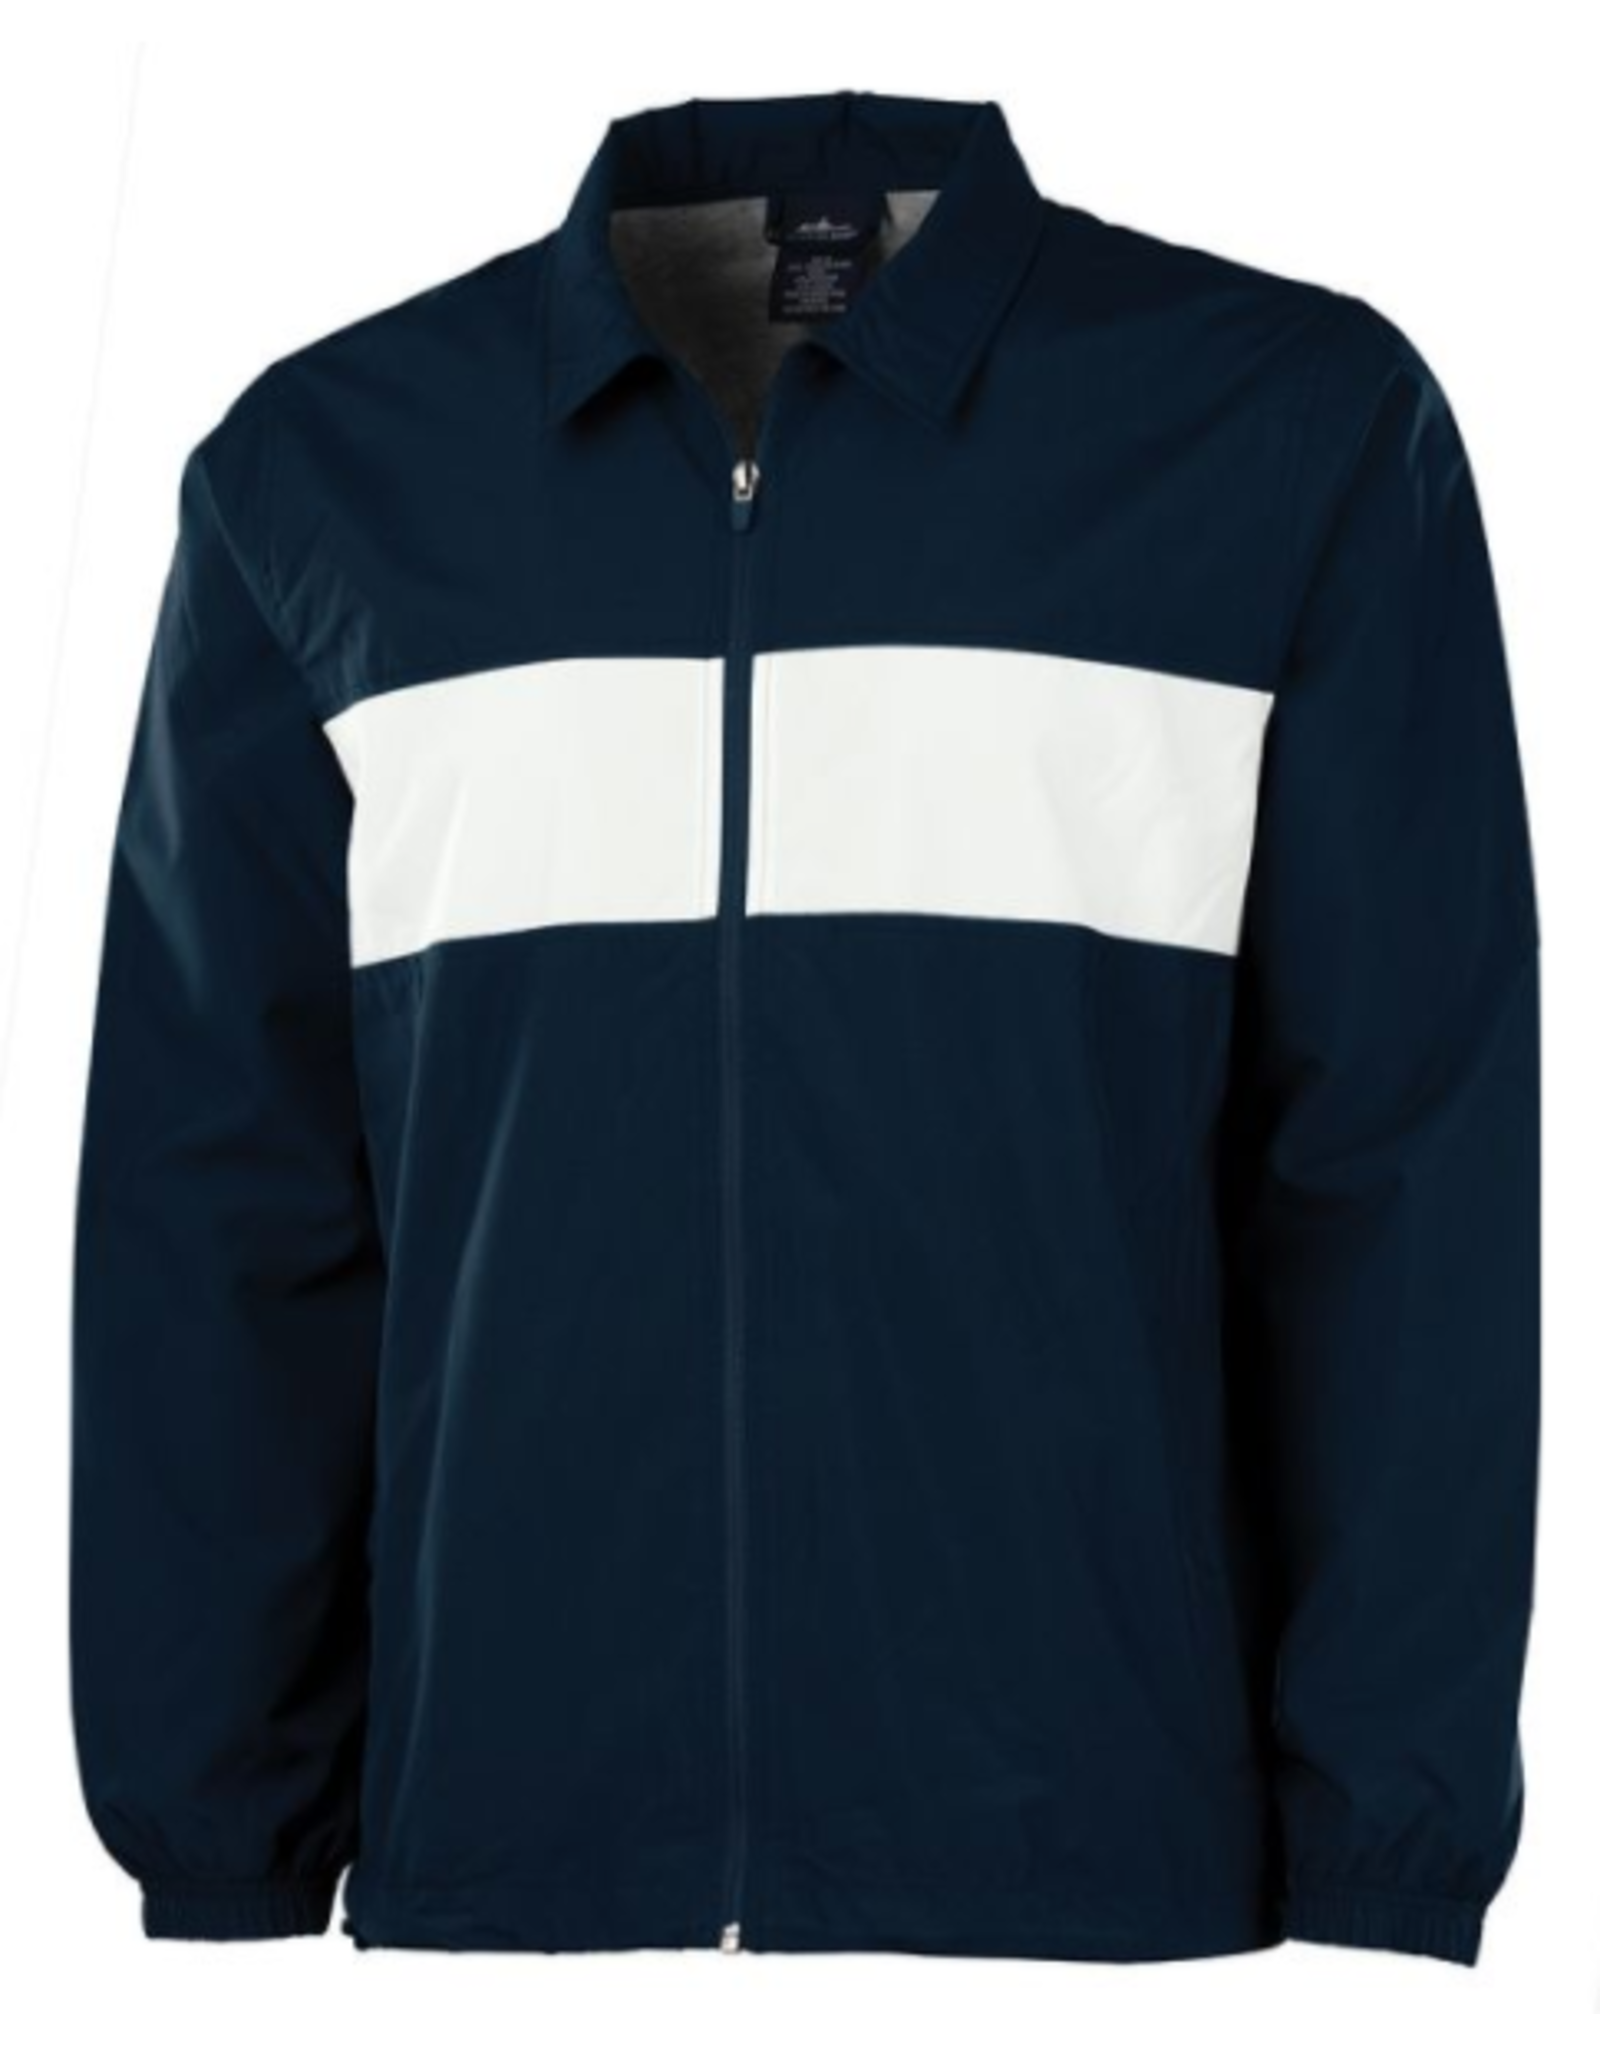 NON-UNIFORM JACKET - Striped Sideline Jacket, custom, Navy/White